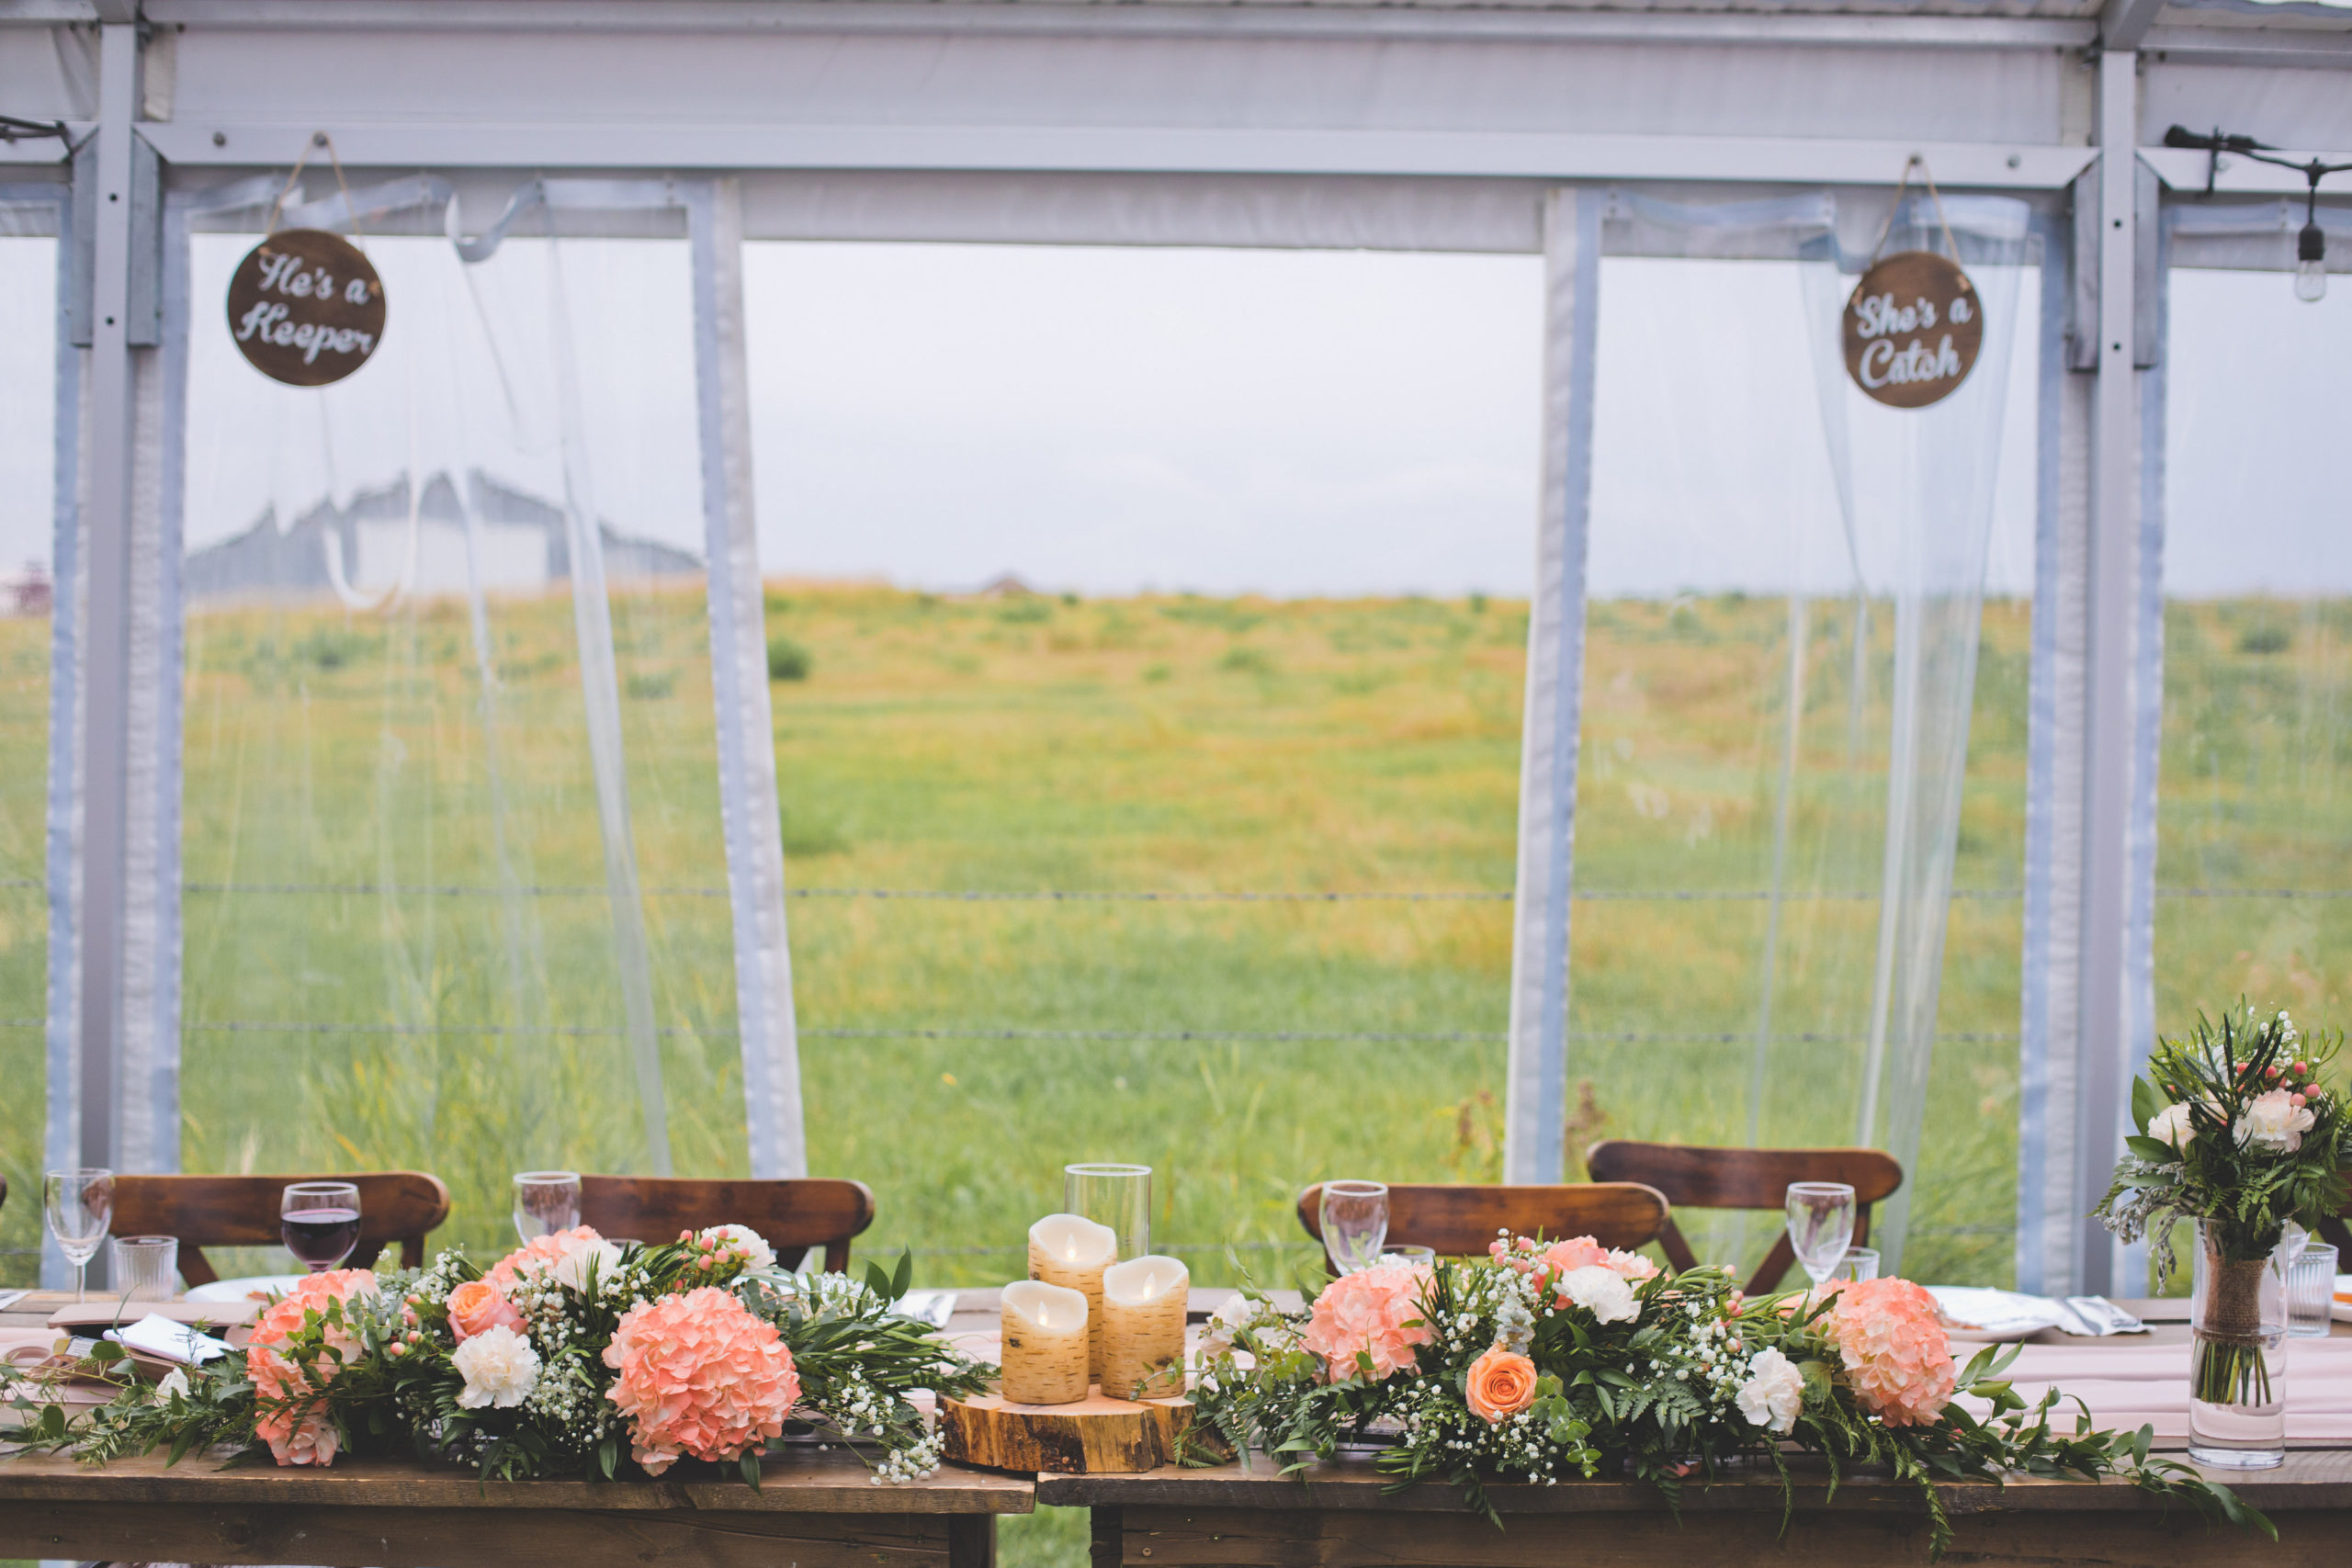 vibrant pink hydrangeas and greenery line the wooden head table with a prairie field in the background for this outdoor prairie wedding.